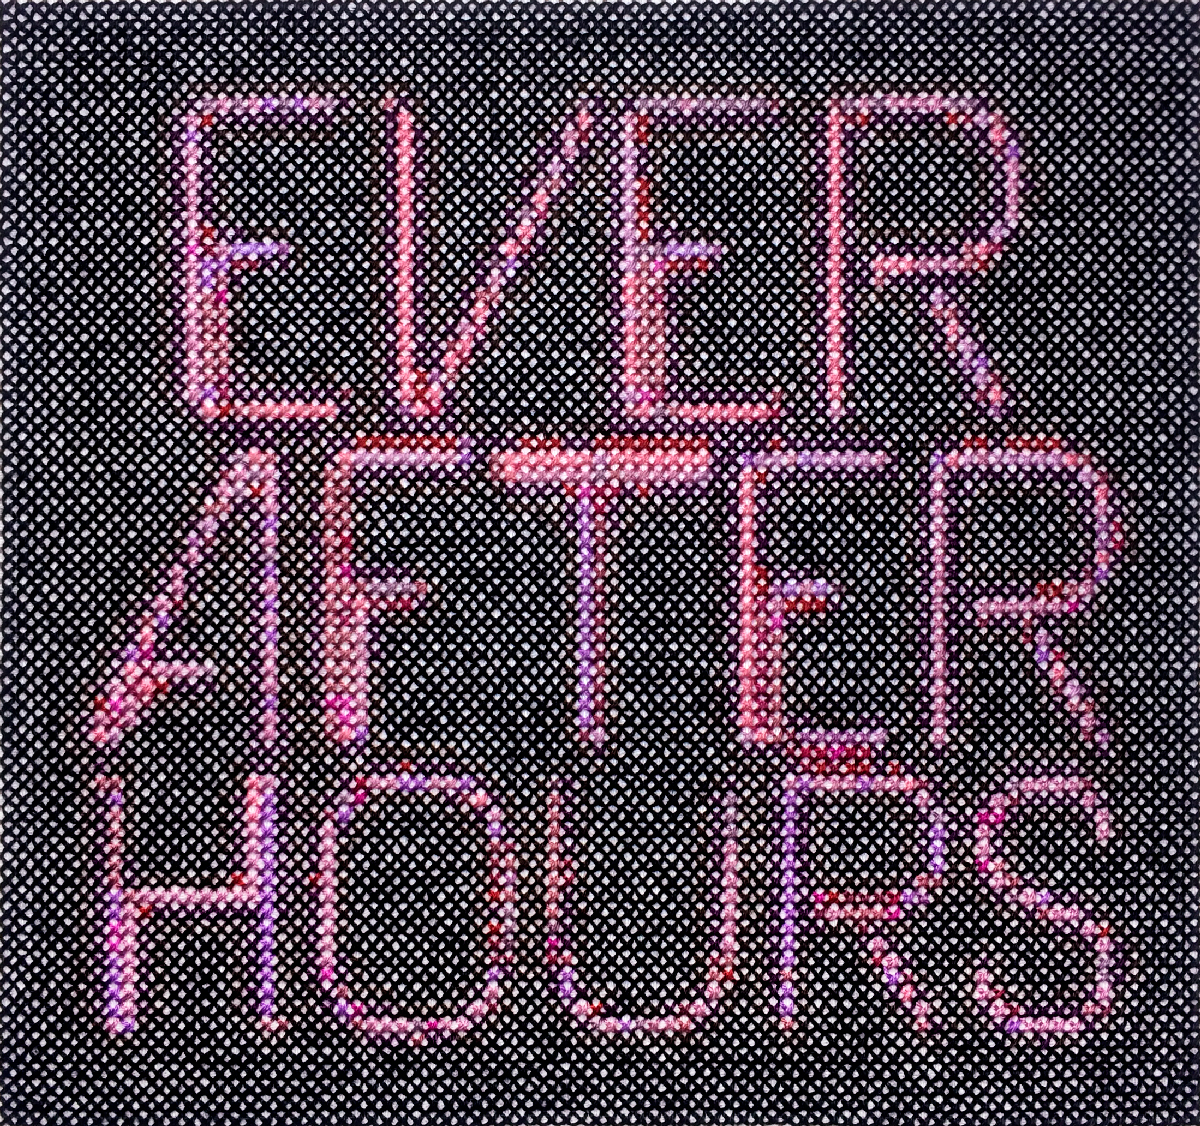 EVER AFTER HOURS   Cotton thread on aida cloth  6.6 x 7.25 inches  2018